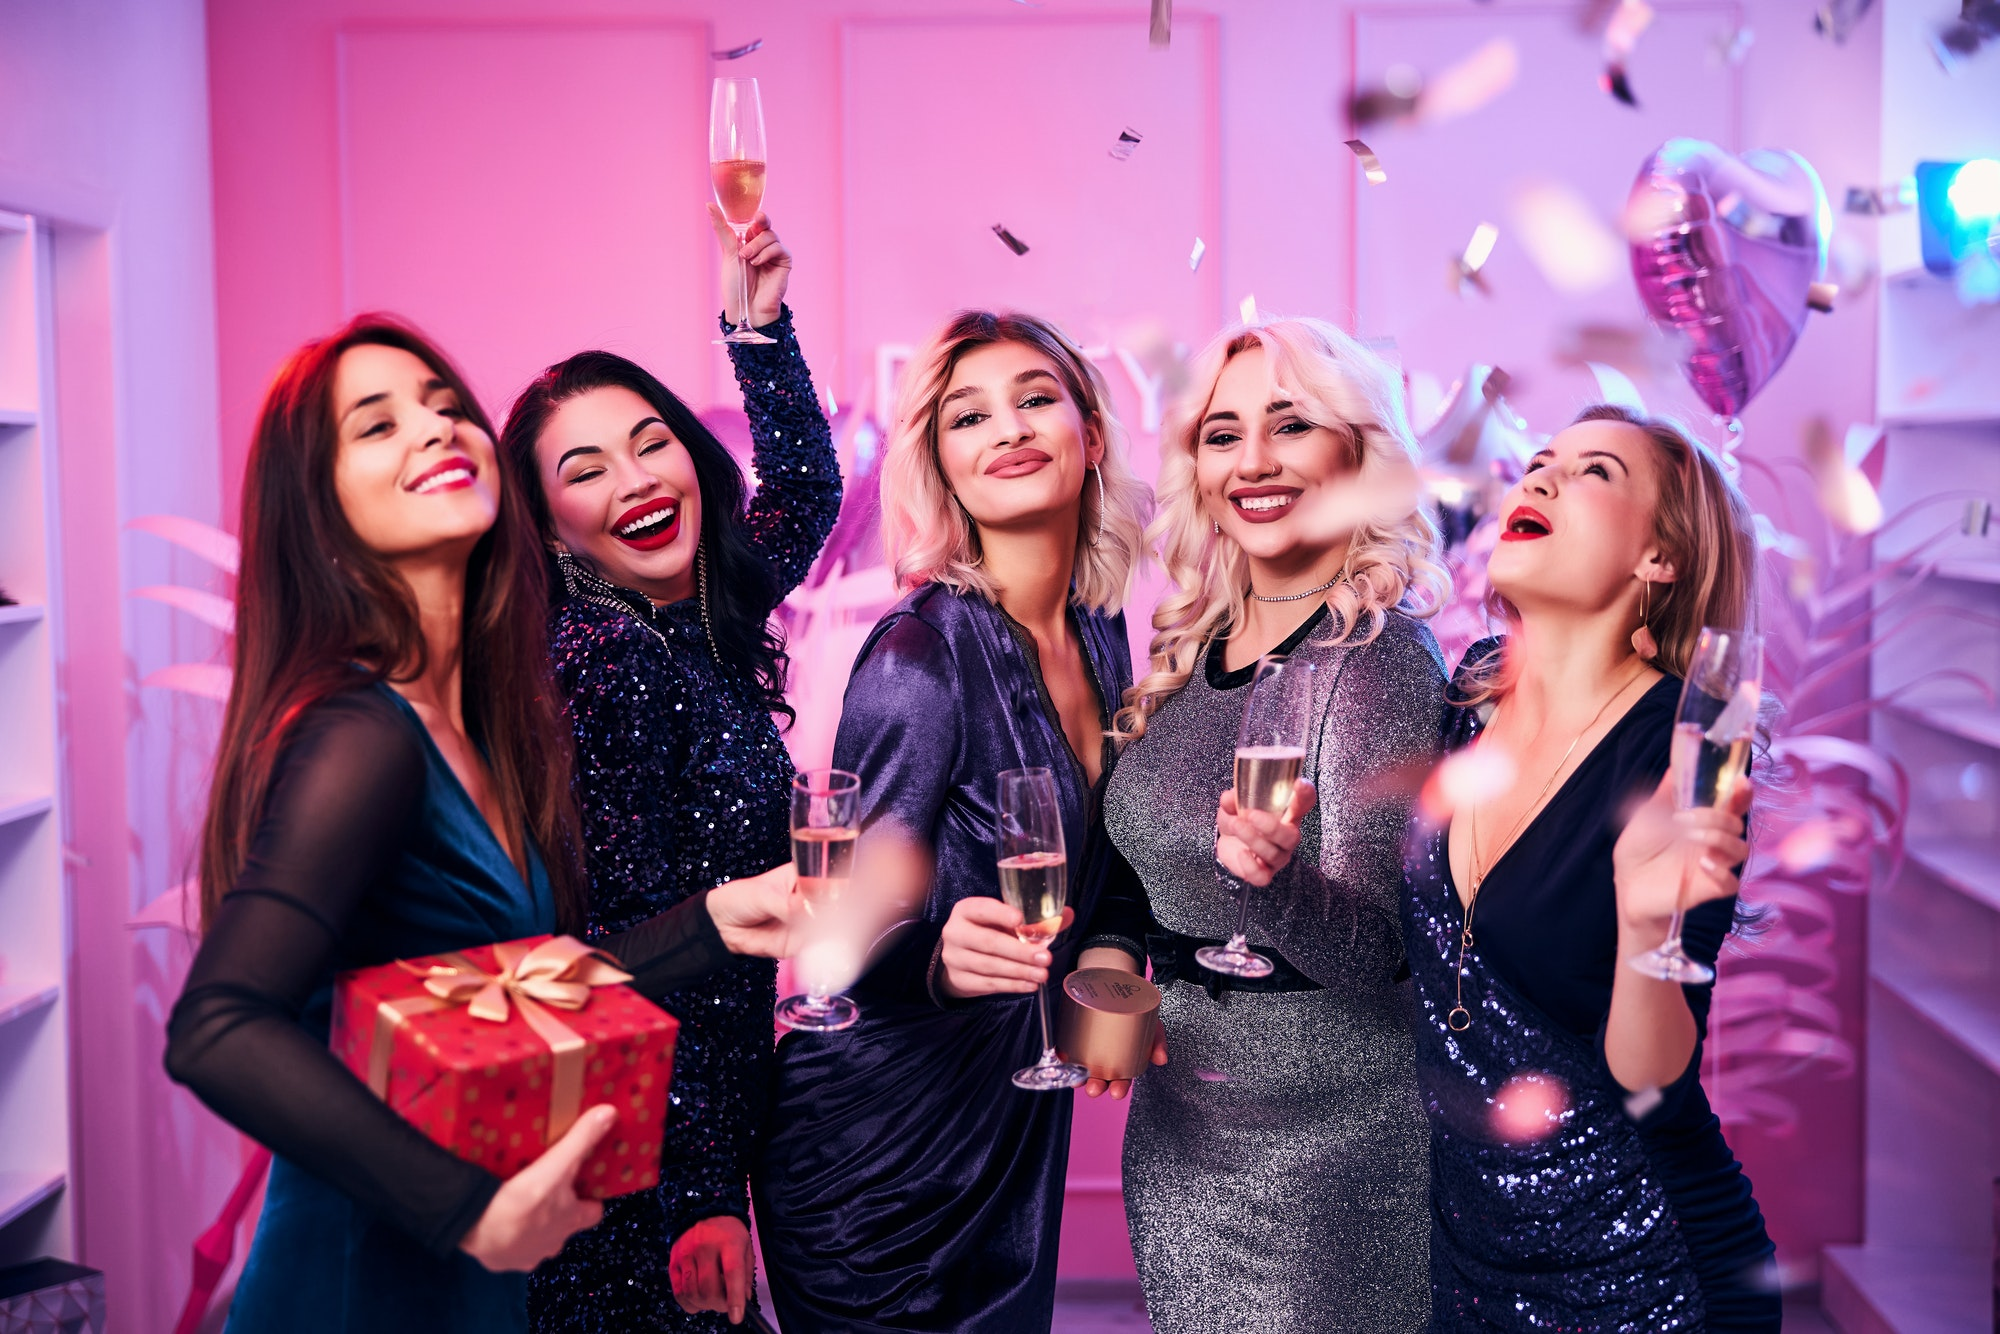 birthday-girl-and-her-colleagues-enjoying-the-office-party.jpg